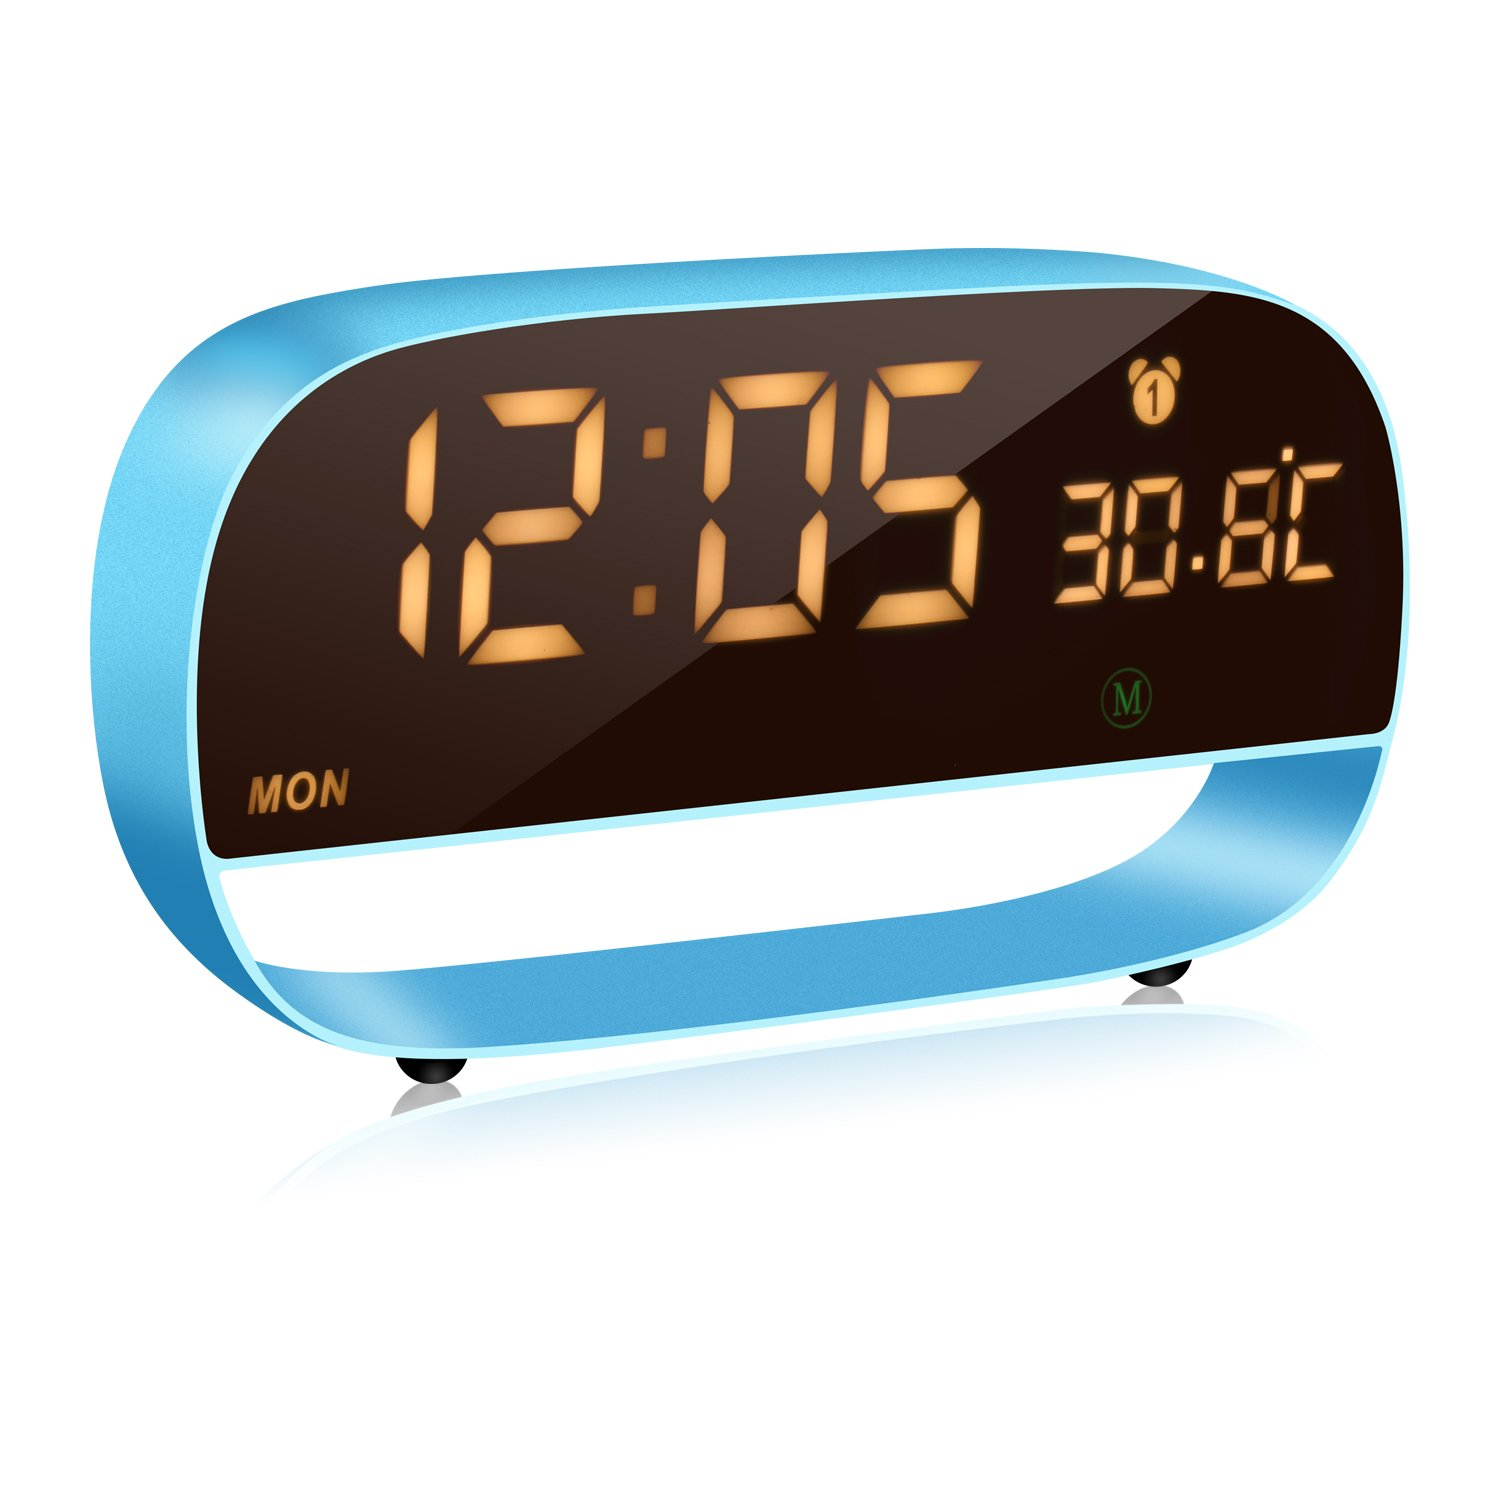 NEW RIXING Digital Alarm Clock, LED Metal Alarm Clock and Triple Alarms, Big Digit Display Date, Support Snooze,Temperature for Home Bedrooms.